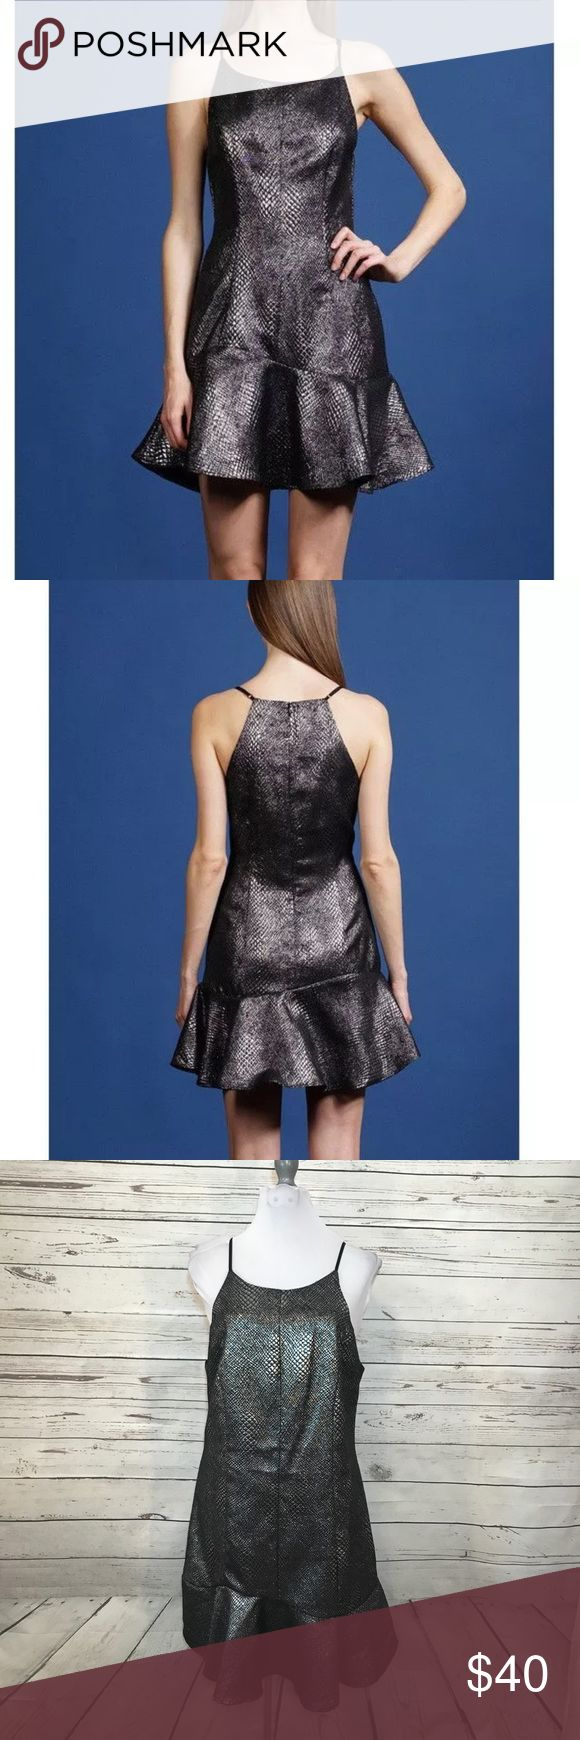 """NWT Adelyn Rae metallic gunmetal snake print dress Brand New With Tag. Adelyn Rae dress with trumpet skirt. Size Large. Metallic Gunmetal/silver snakeskin print. Adjustable Straps.    Armpit to Armpit: approx 18"""" Waist: approx 16.75"""" Shoulder to bottom: approx 34.5"""" (adjustable straps) Adelyn Rae Dresses Mini"""